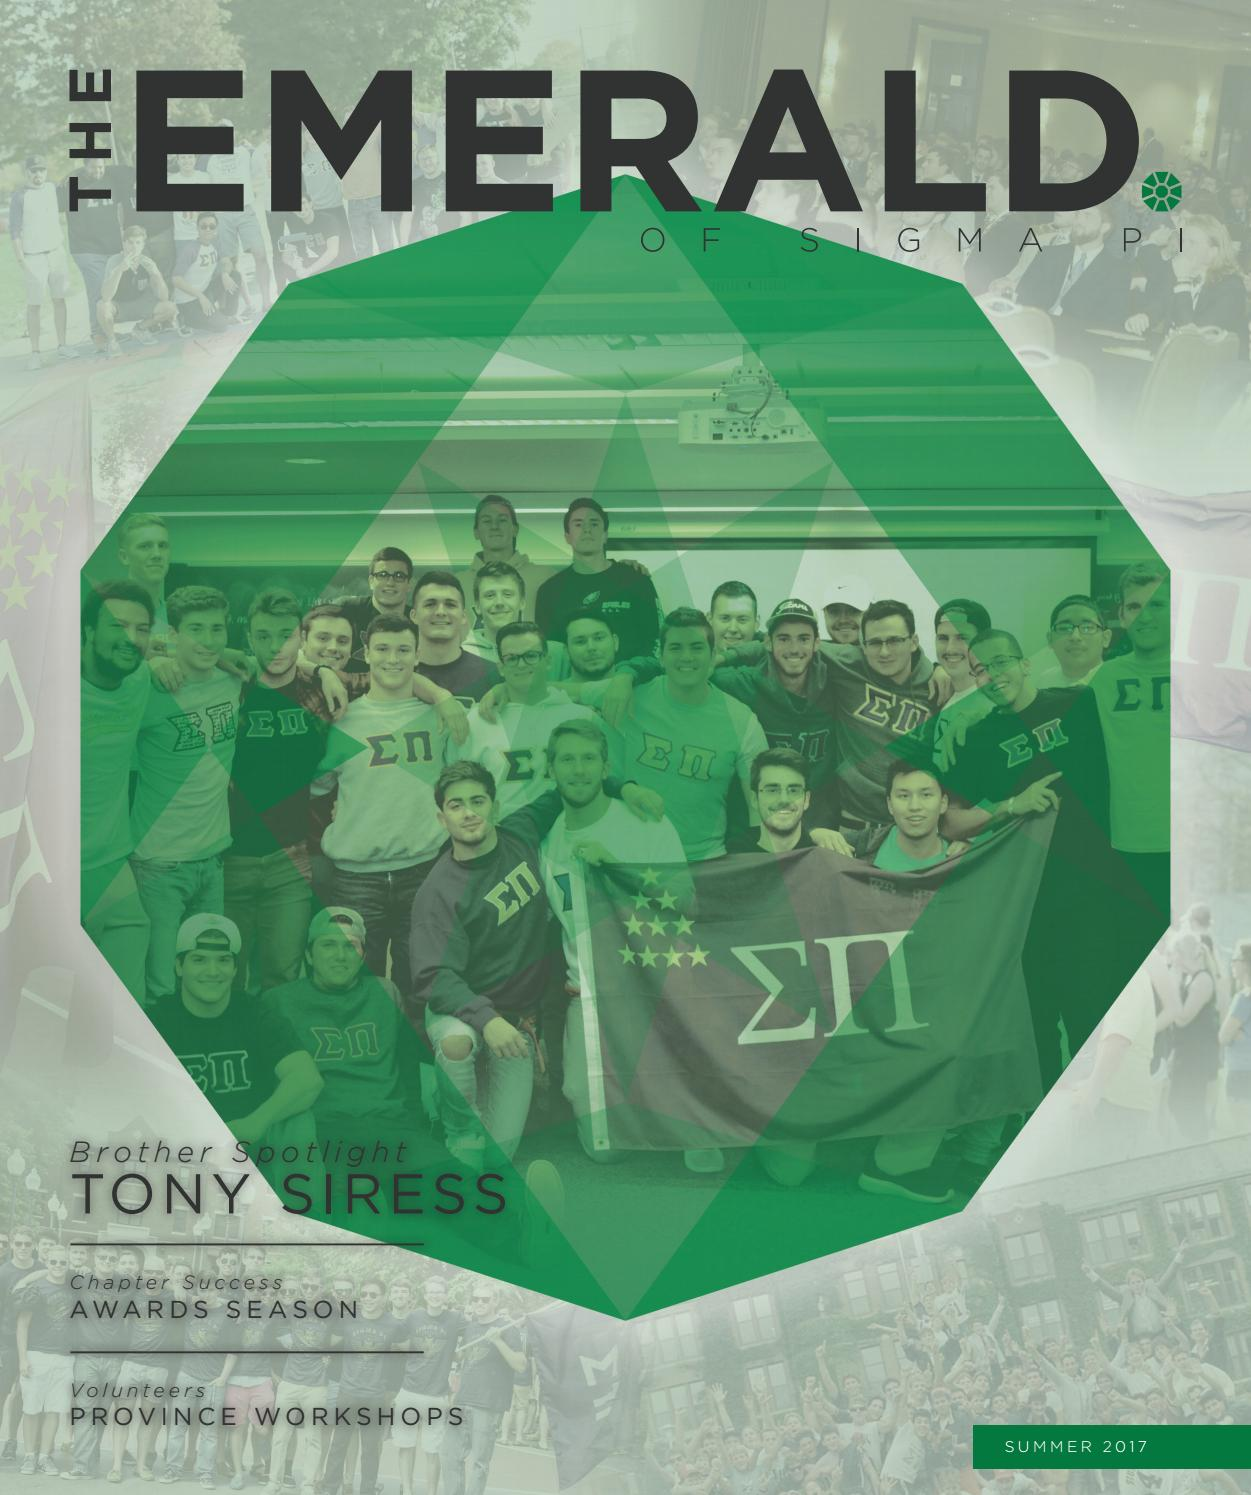 The Emerald - Summer 2017 by Sigma Pi Fraternity - issuu